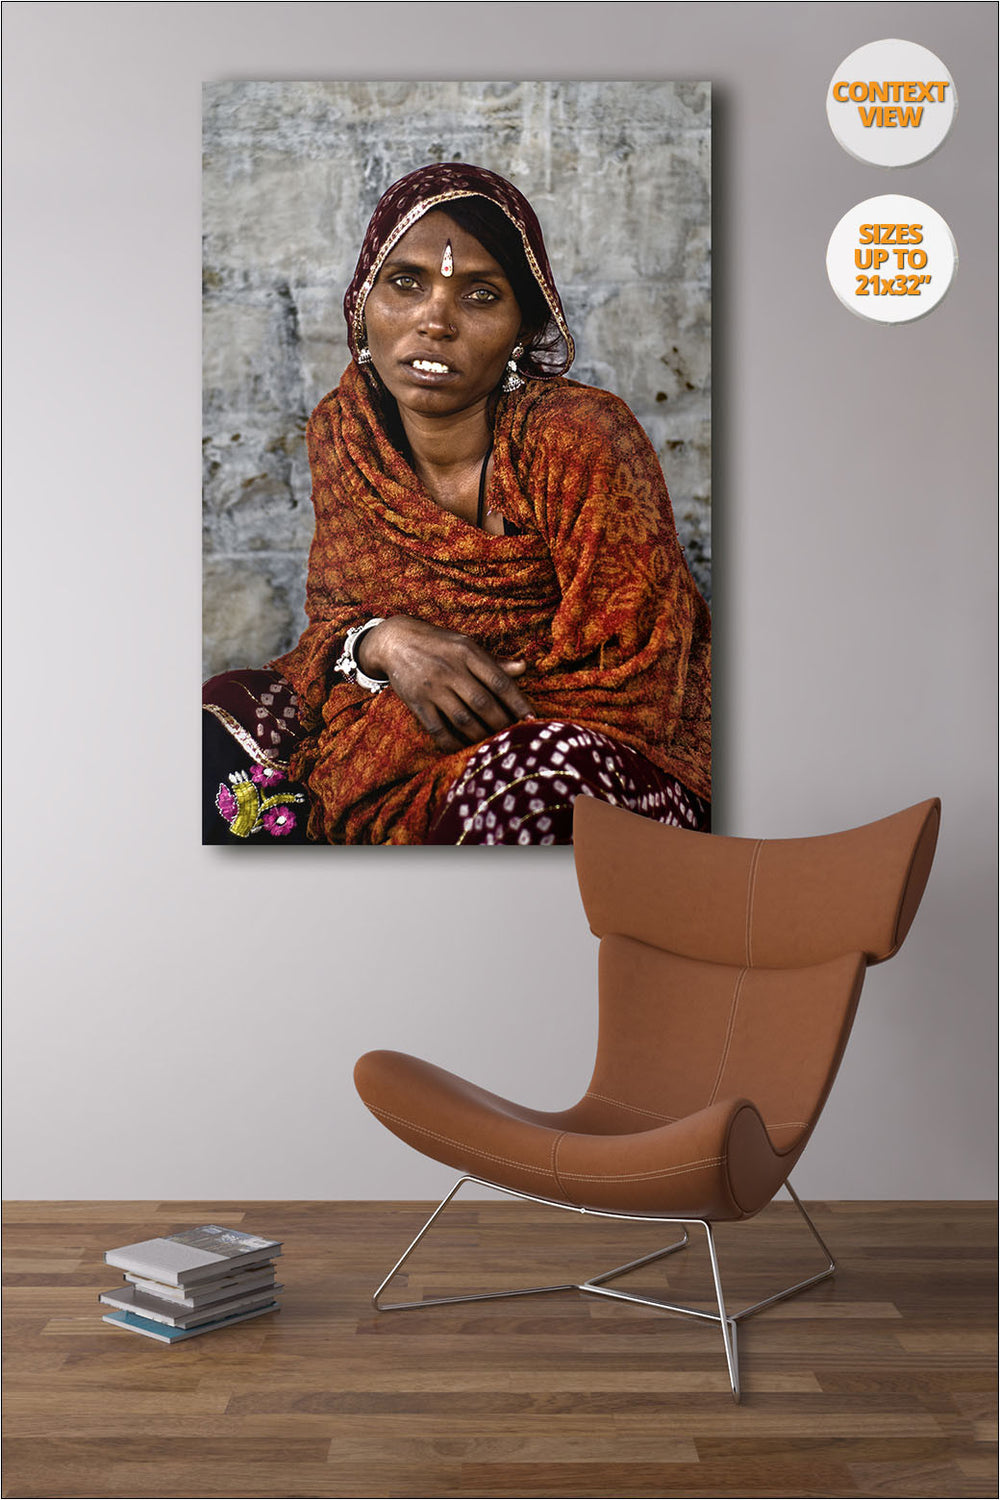 Portrait of Rajastani woman, Pushkar Camel Fair, Rajastan. | View of the Print hanged in reading Room.